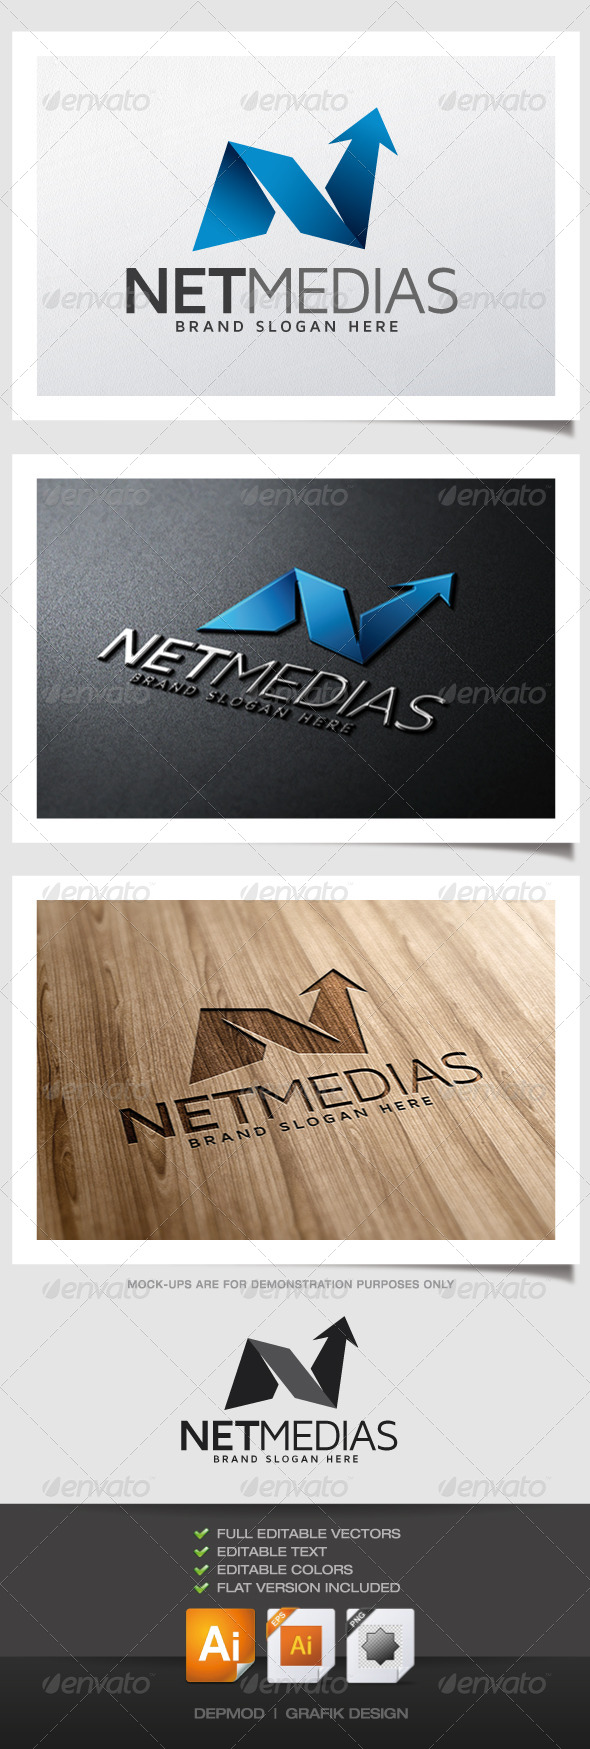 Net Medias Logo - Abstract Logo Templates